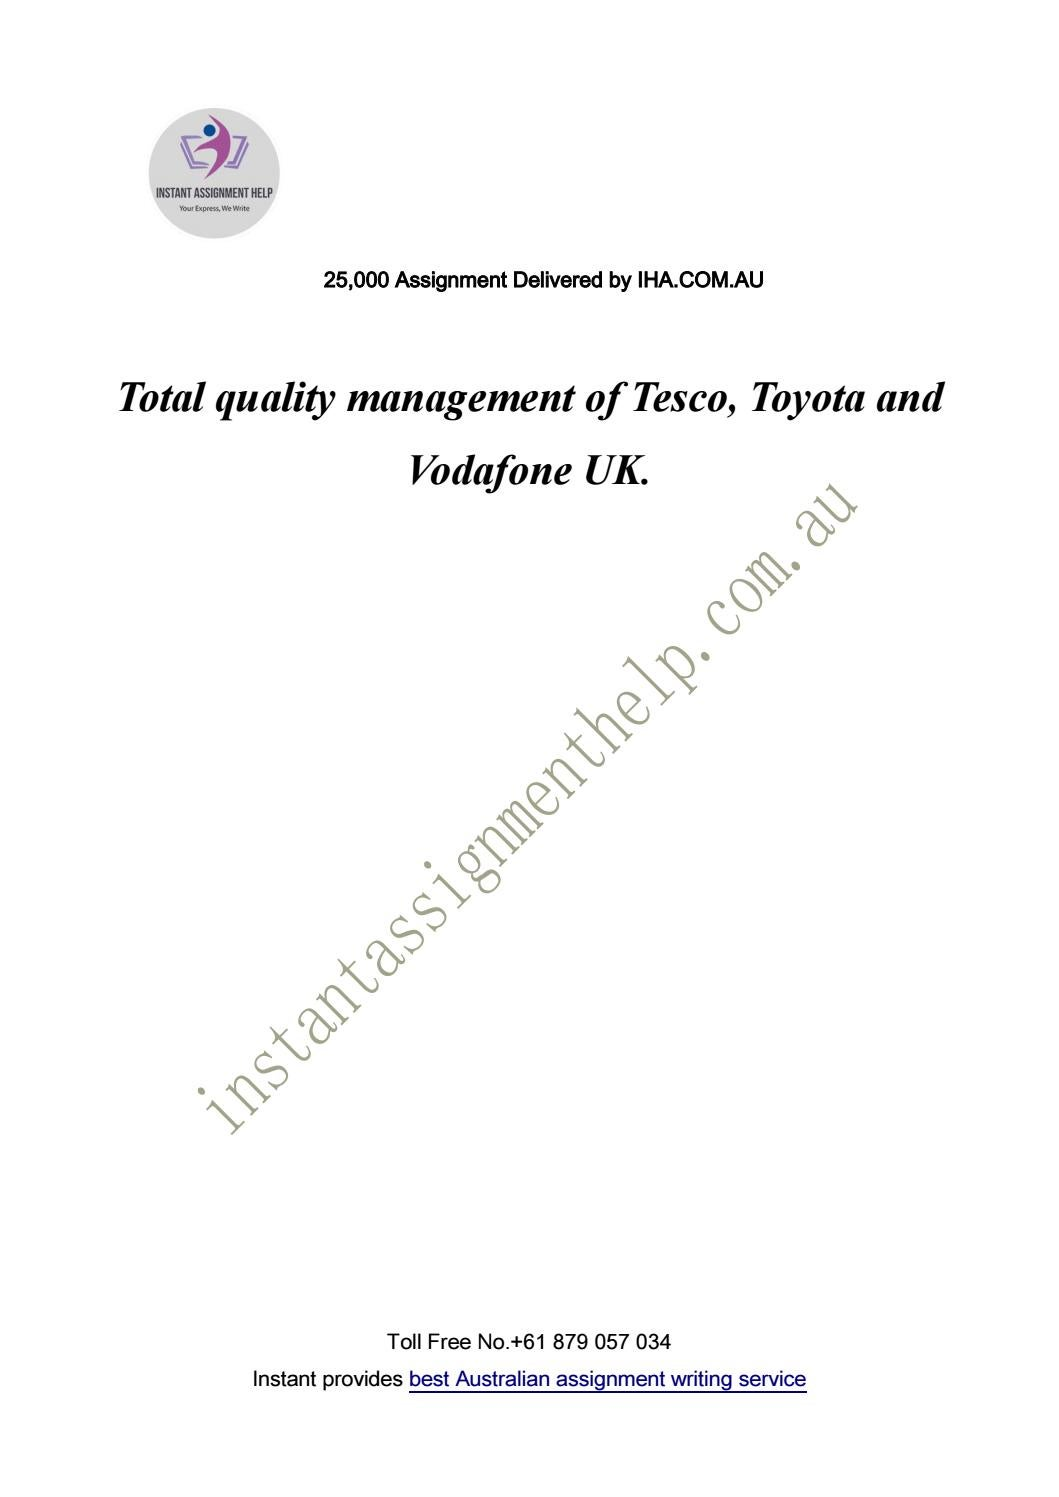 quality management of tesco toyota and vodafone by instant  quality management of tesco toyota and vodafone by instant assignment help issuu